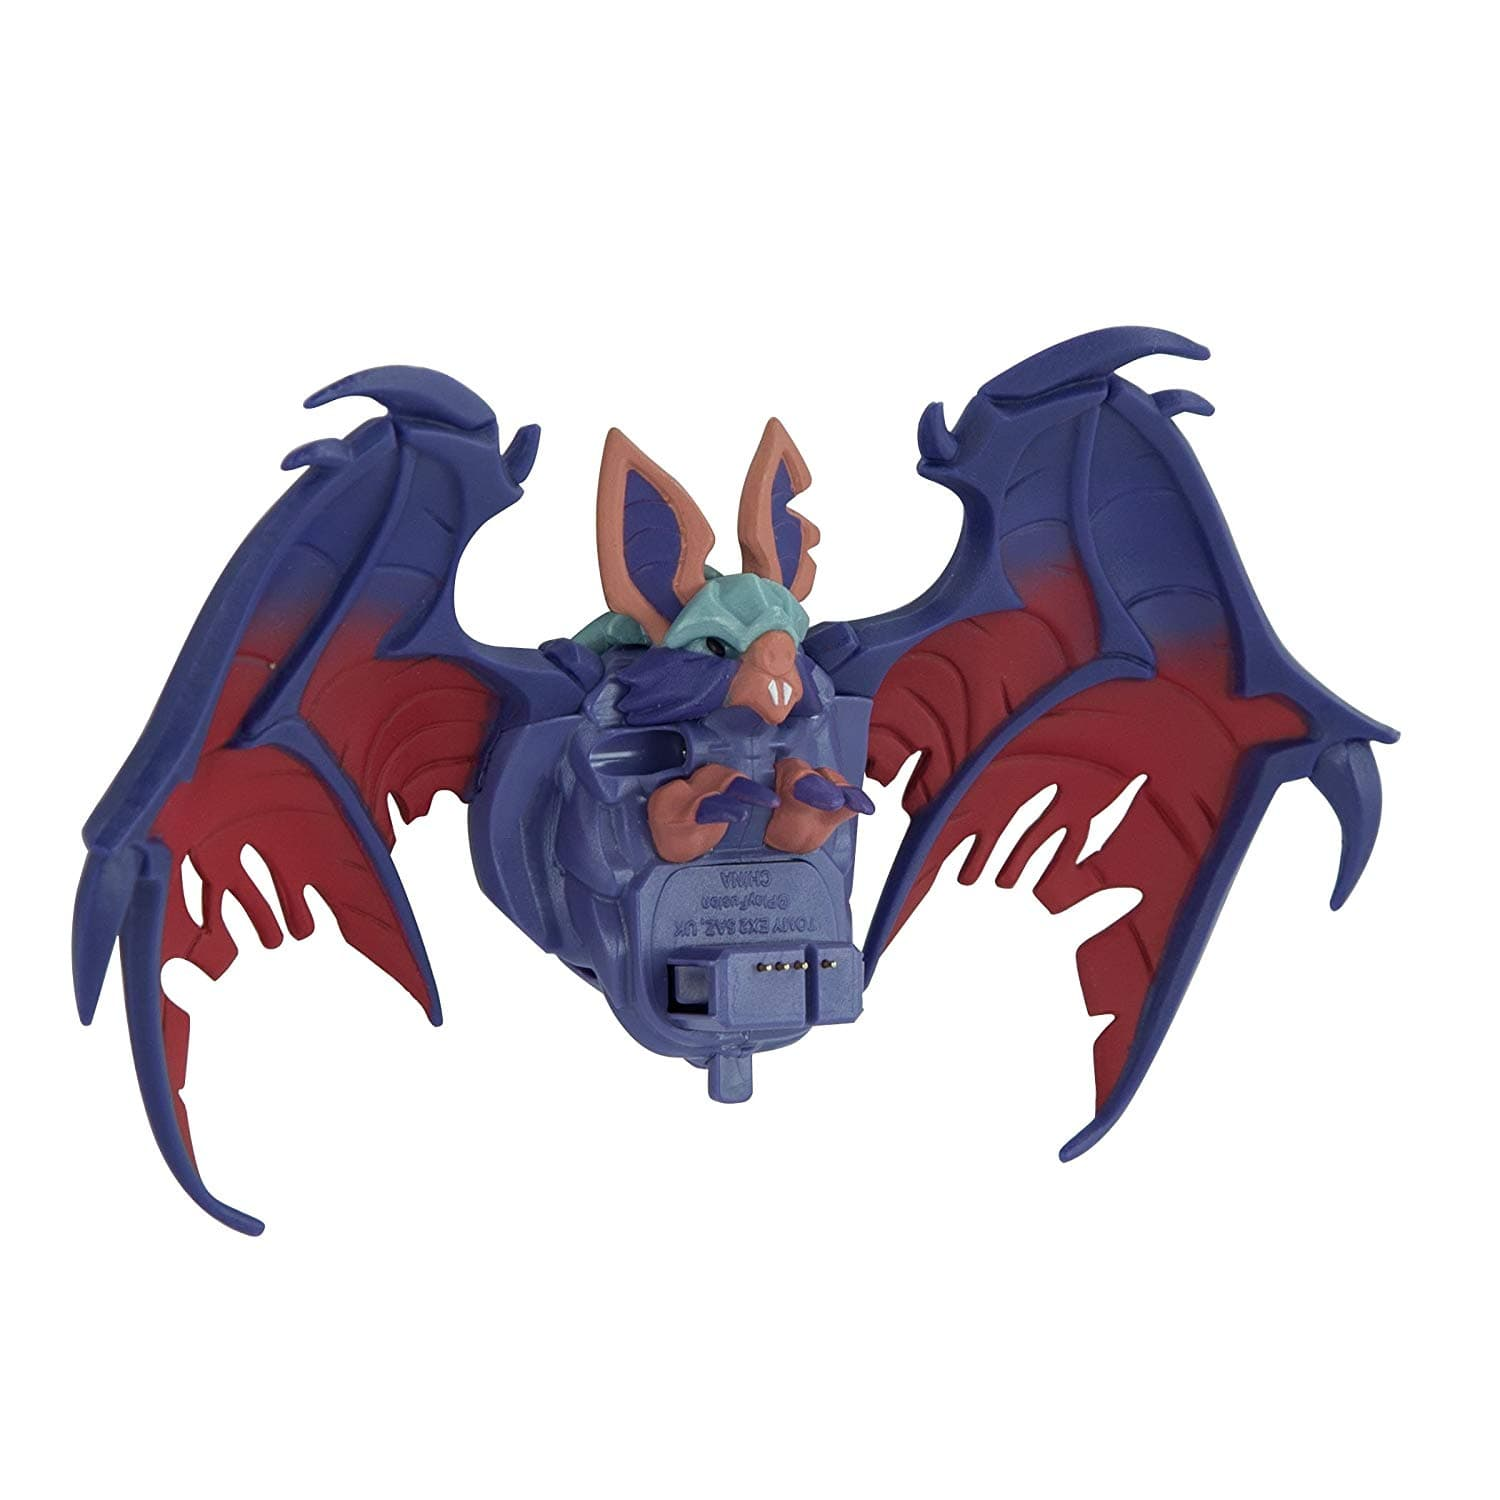 Lightseekers Flight Pack - Grimglider $3.59 - Amazon